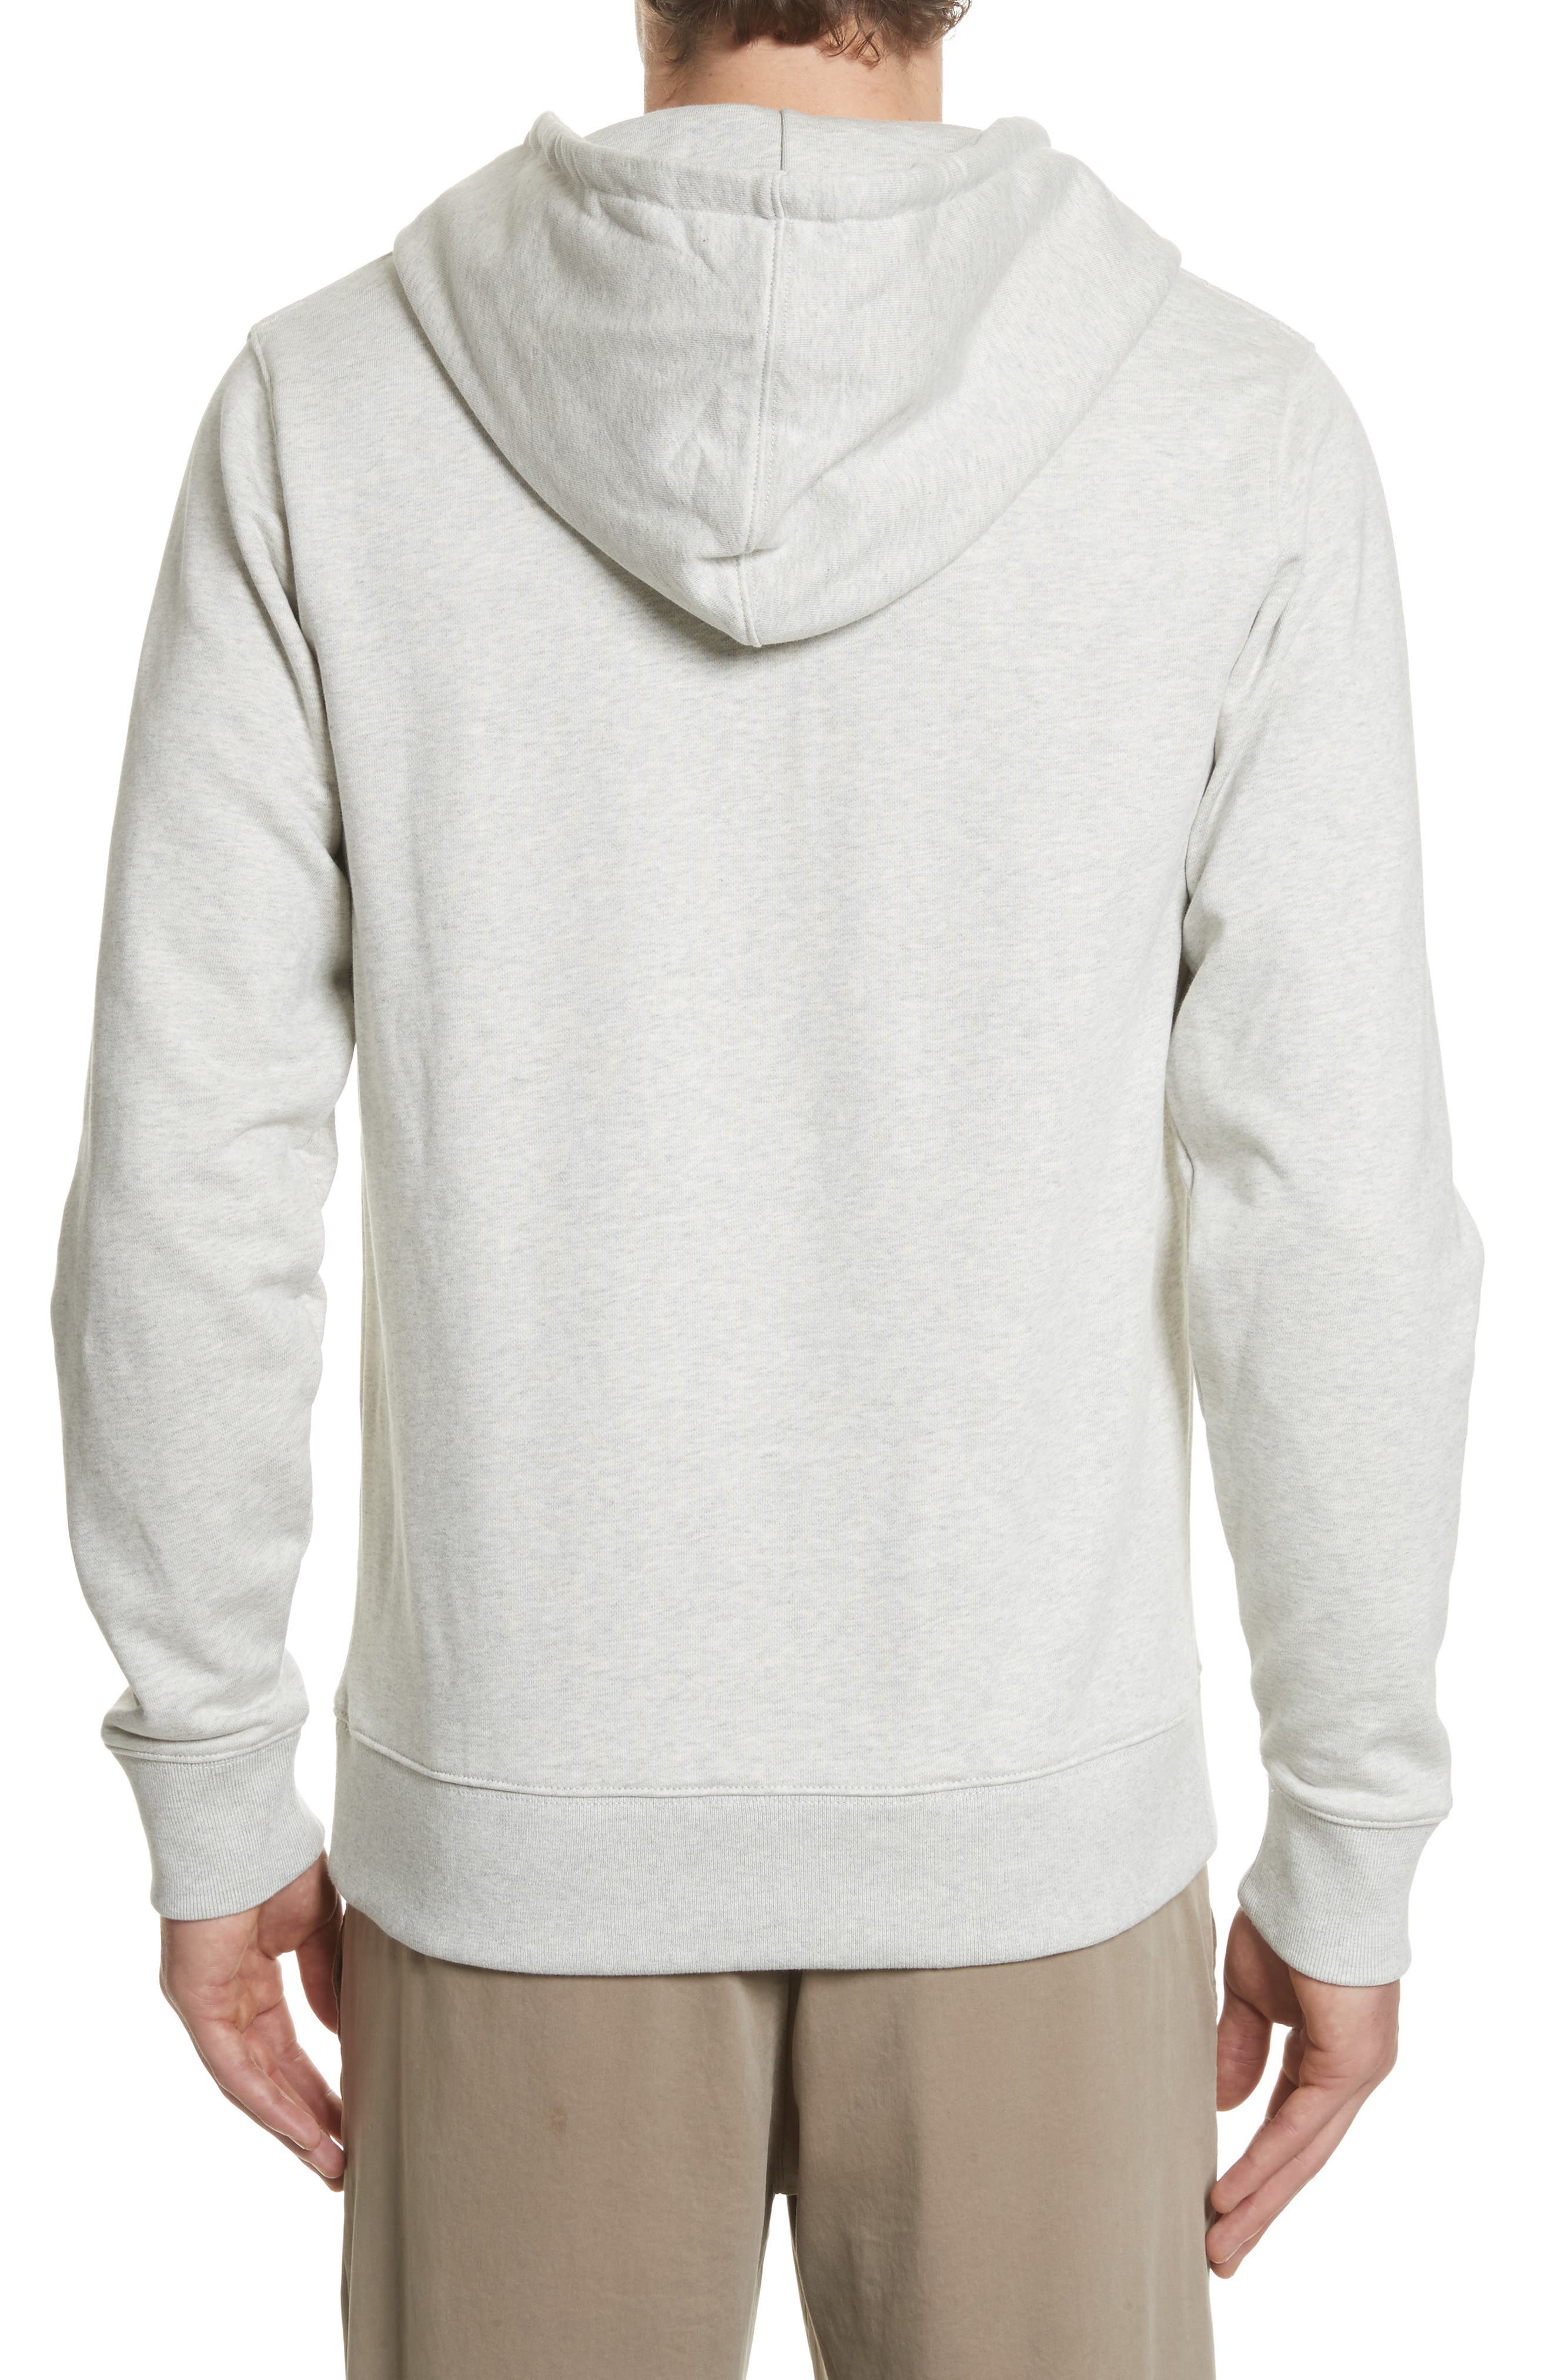 Ditch Graphic Hoodie,                             Alternate thumbnail 2, color,                             290